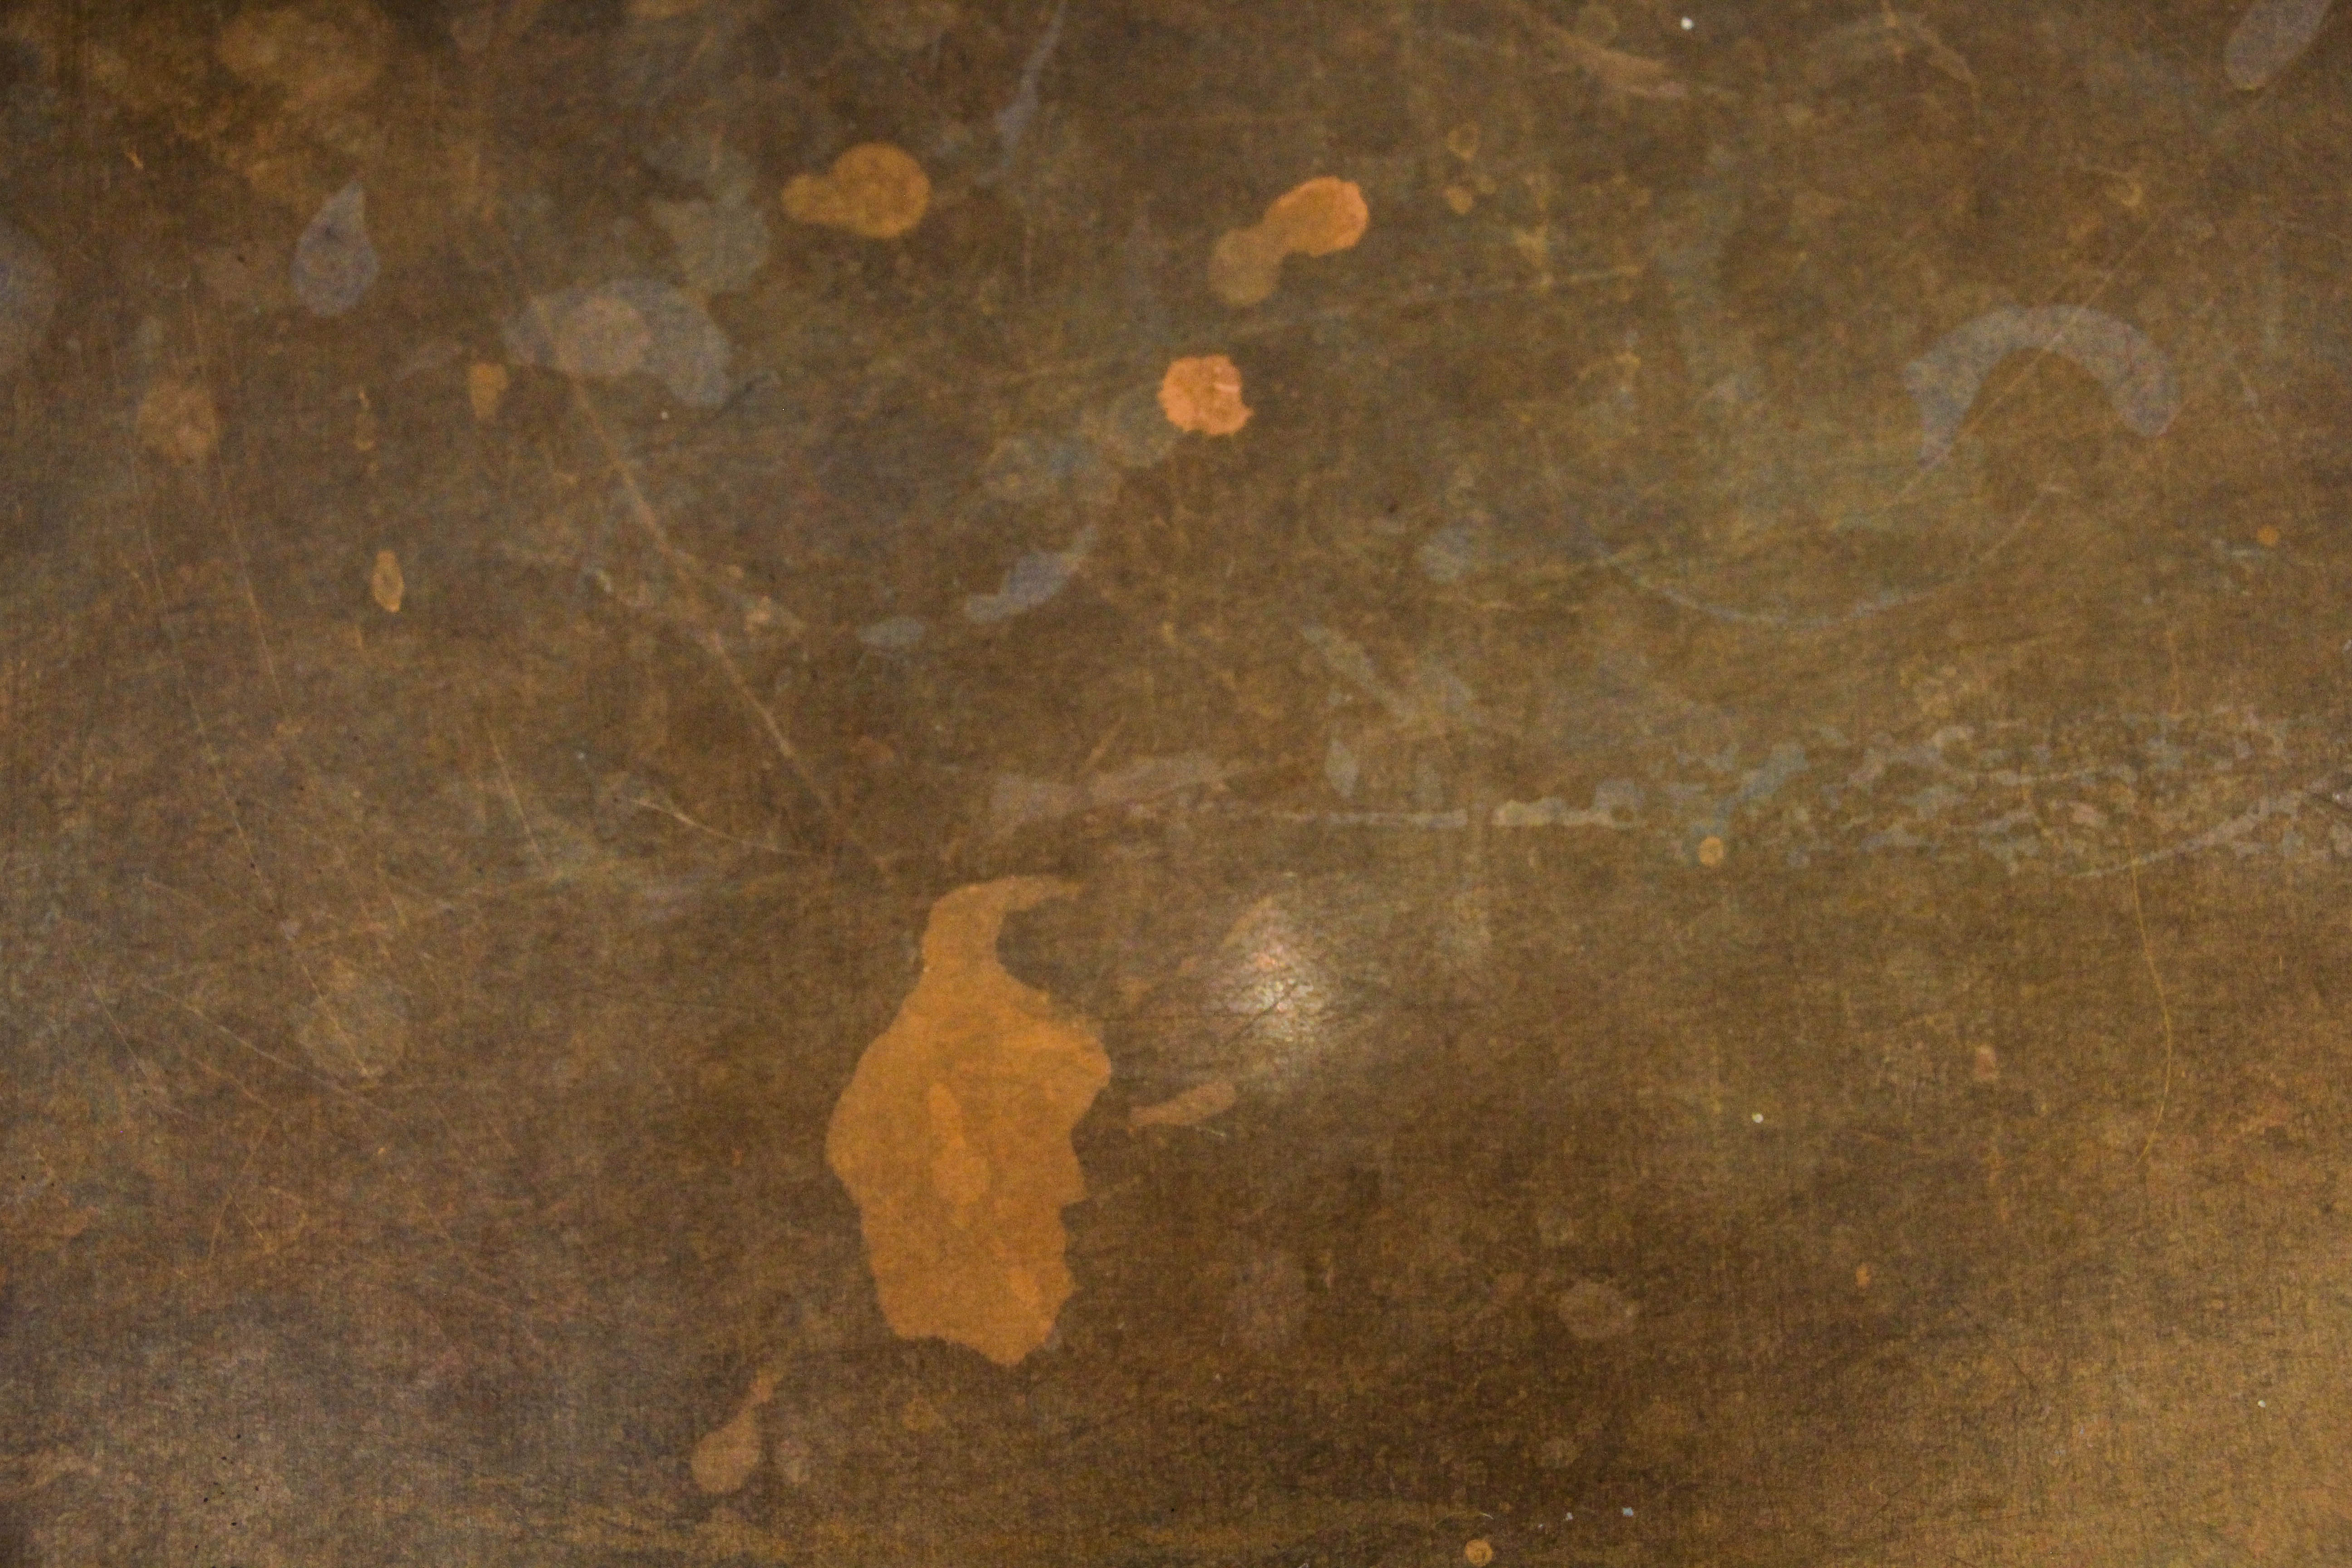 stained concrete floor texture. Grunge Texture Spotted Orange Stained Concrete Floor Wallpaper - TextureX- Free And Premium Textures High Resolution Graphics